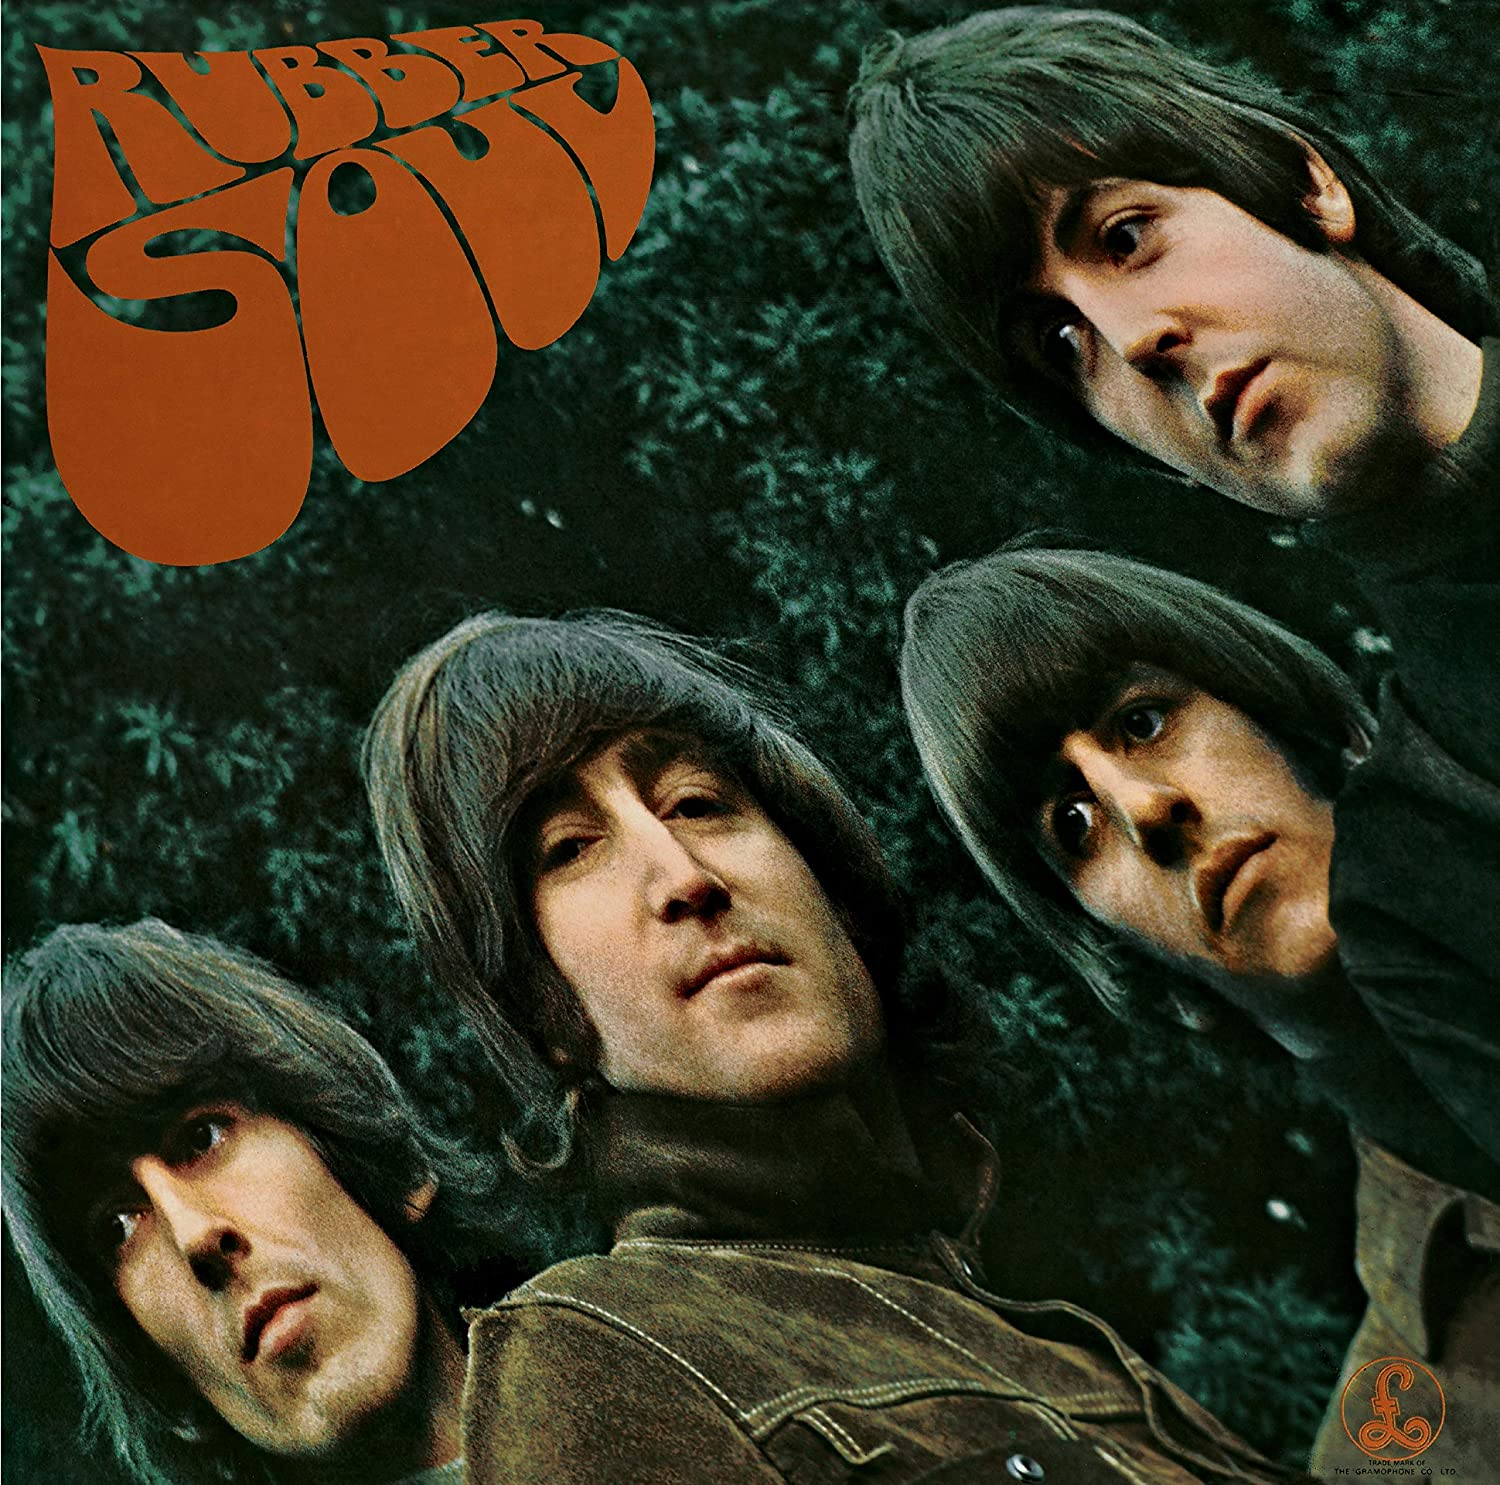 Beatles - Rubber Soul - Amazon.com Music